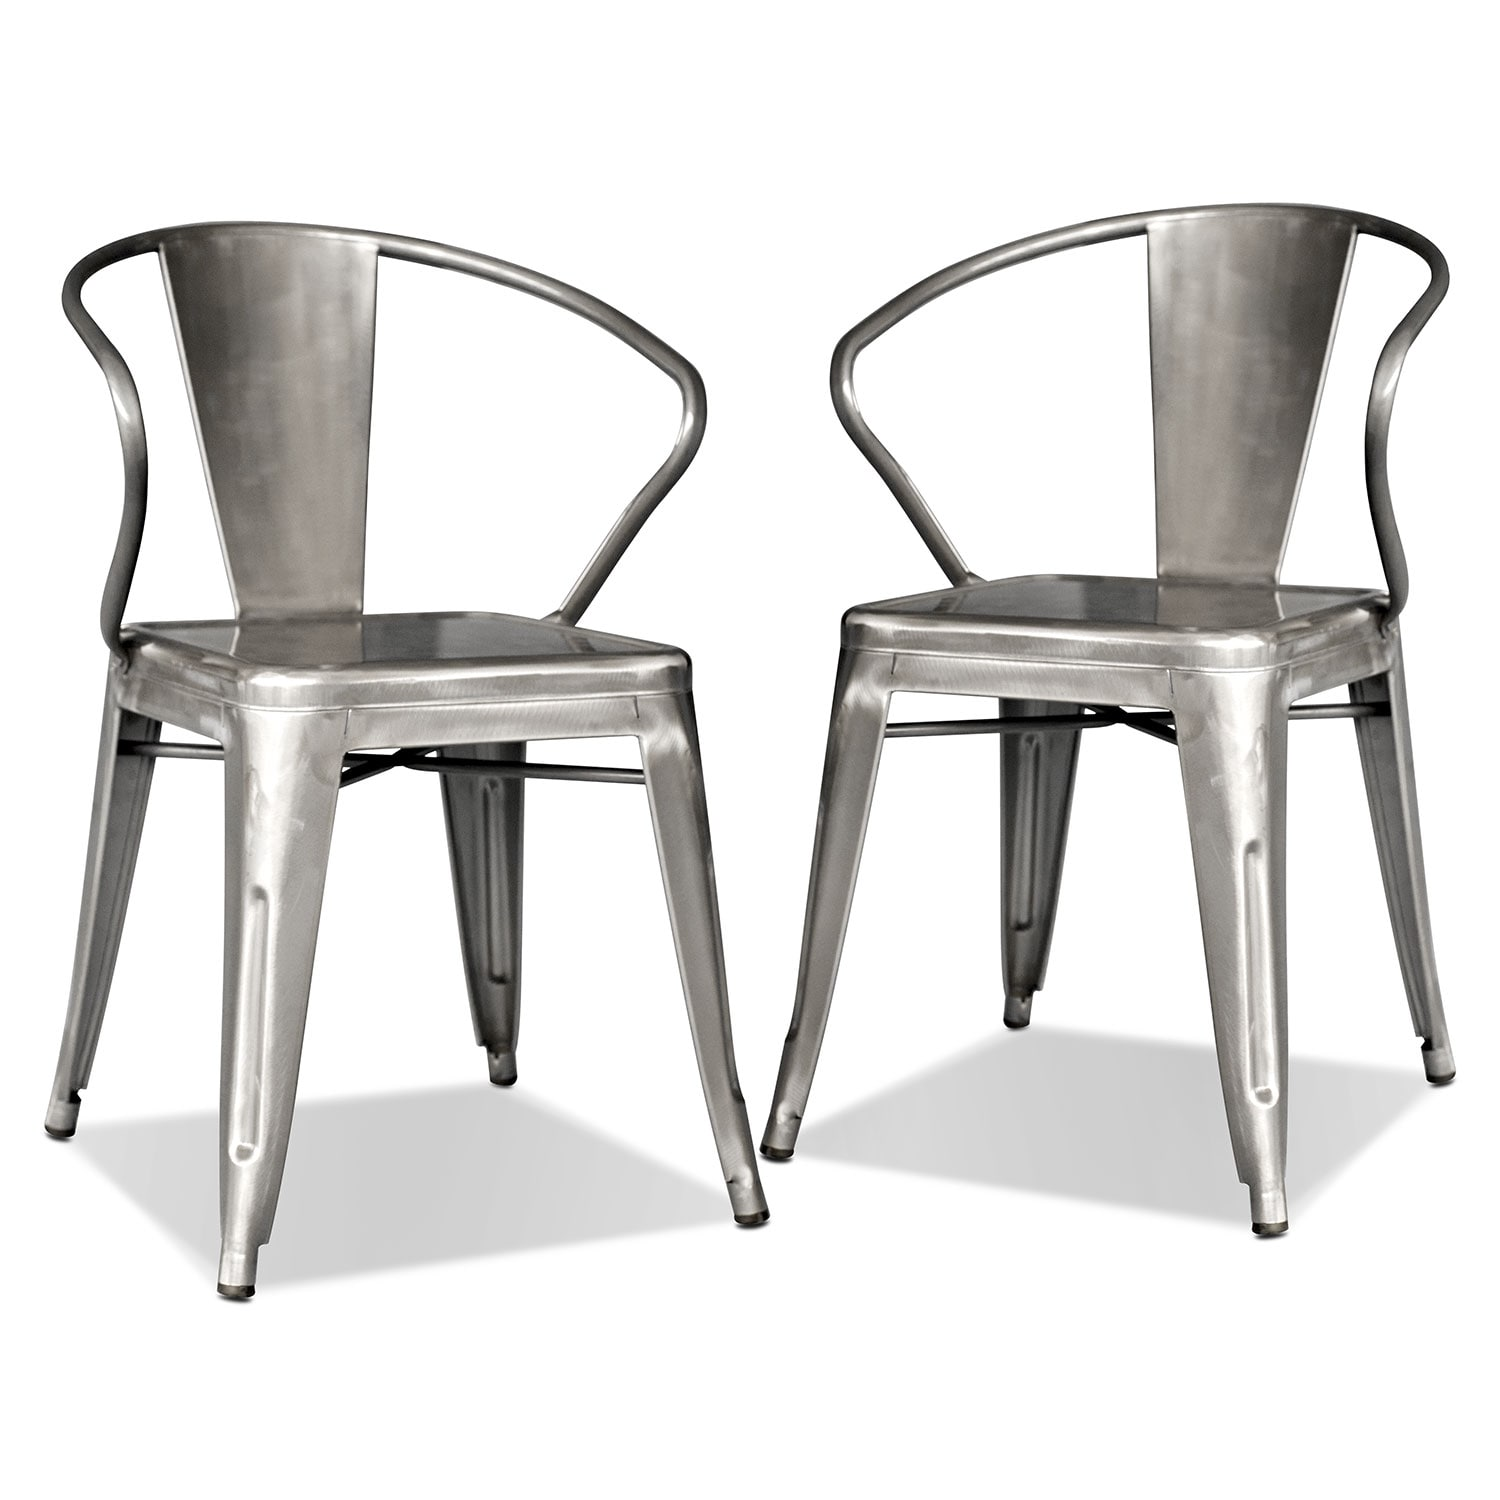 squadron 2pack arm chairs polished steel - Metal Dining Room Chairs